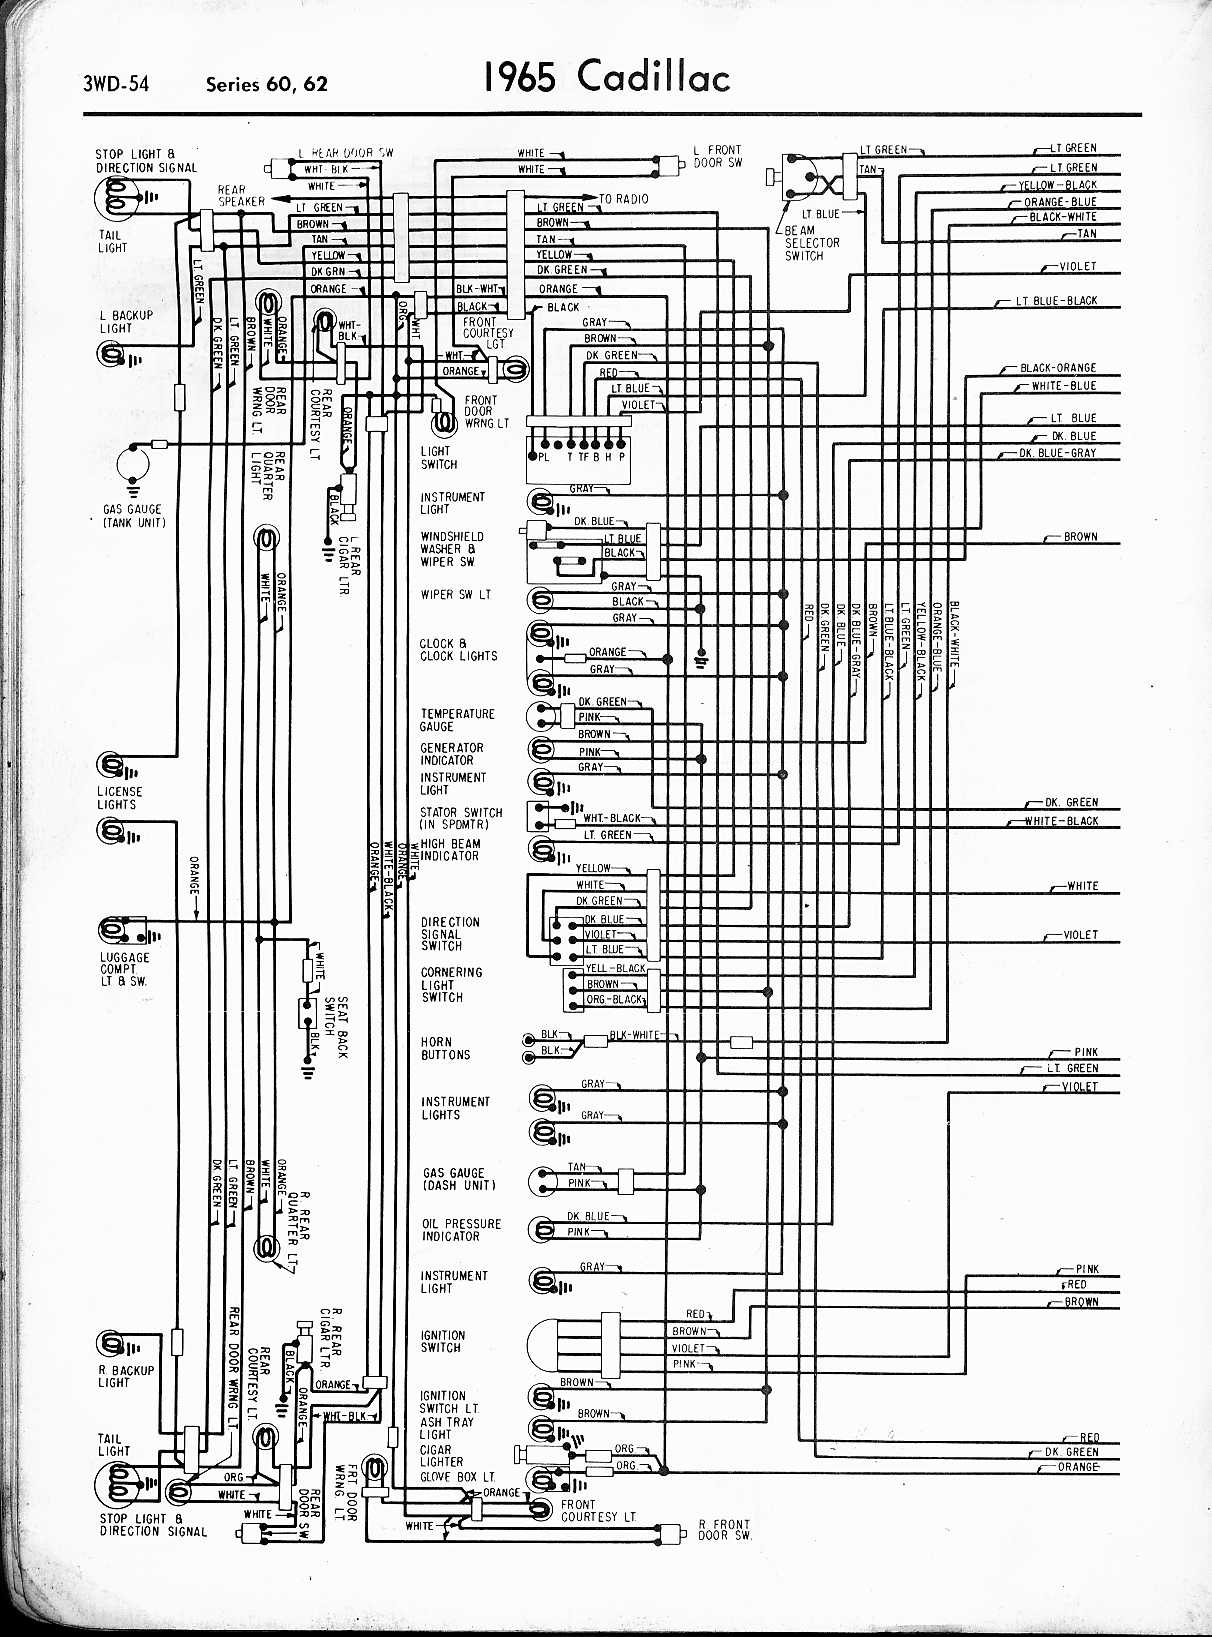 1955 cadillac series 62 wiring diagram example electrical wiring rh olkha co 1954 Cadillac Series 62 1964 Cadillac Series 62